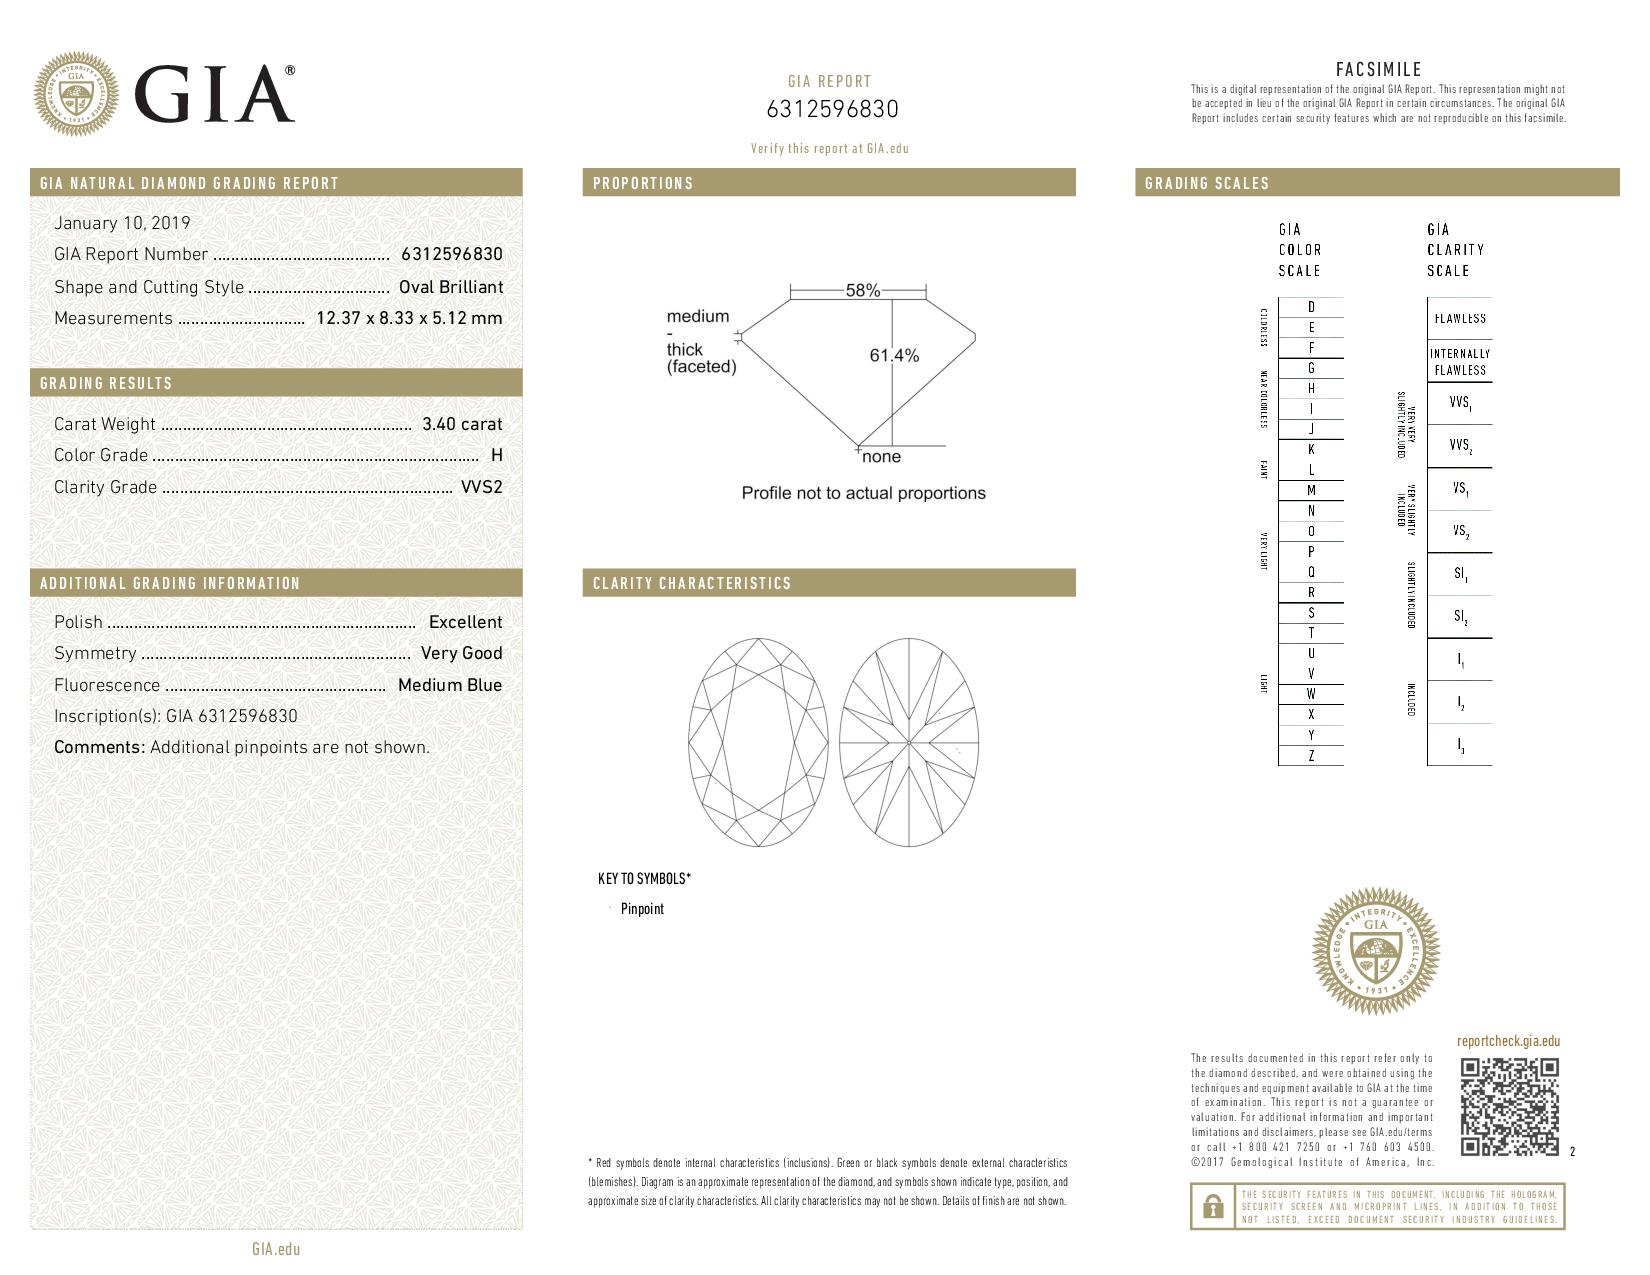 This is a 3.40 carat oval shape, H color, VVS2 clarity natural diamond accompanied by a GIA grading report.